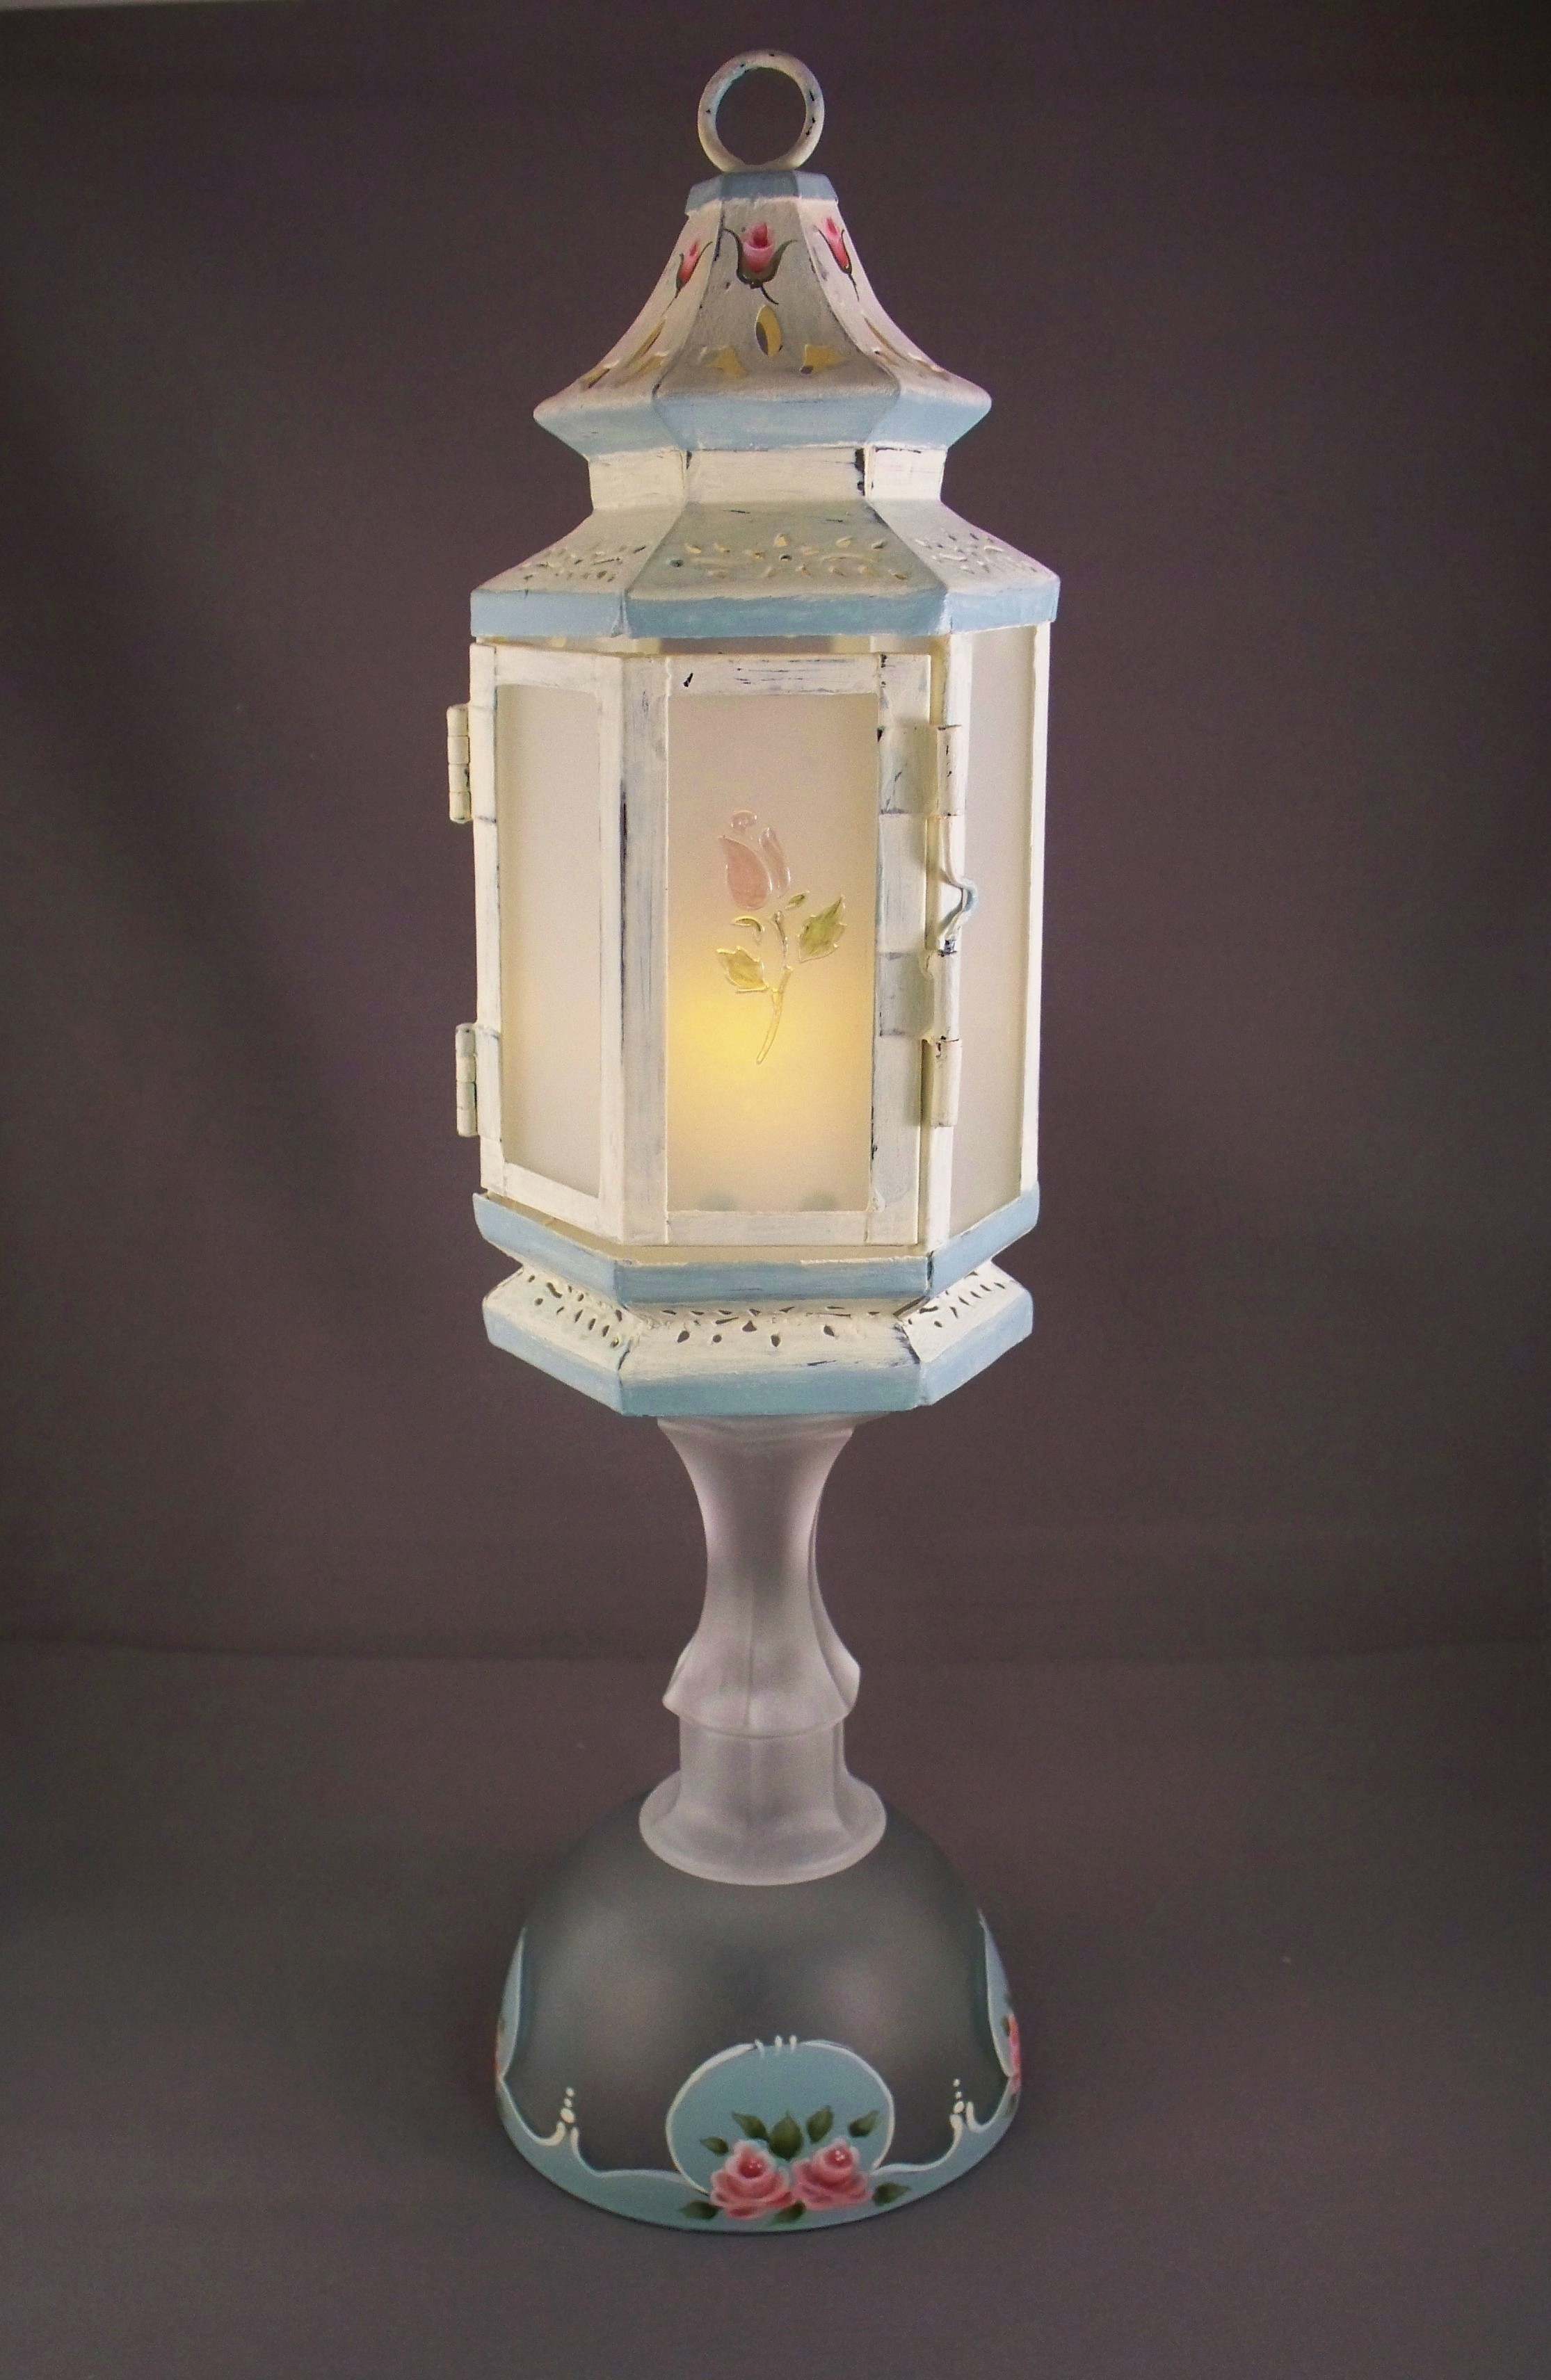 Etched Shabby Chic Lantern – Roses